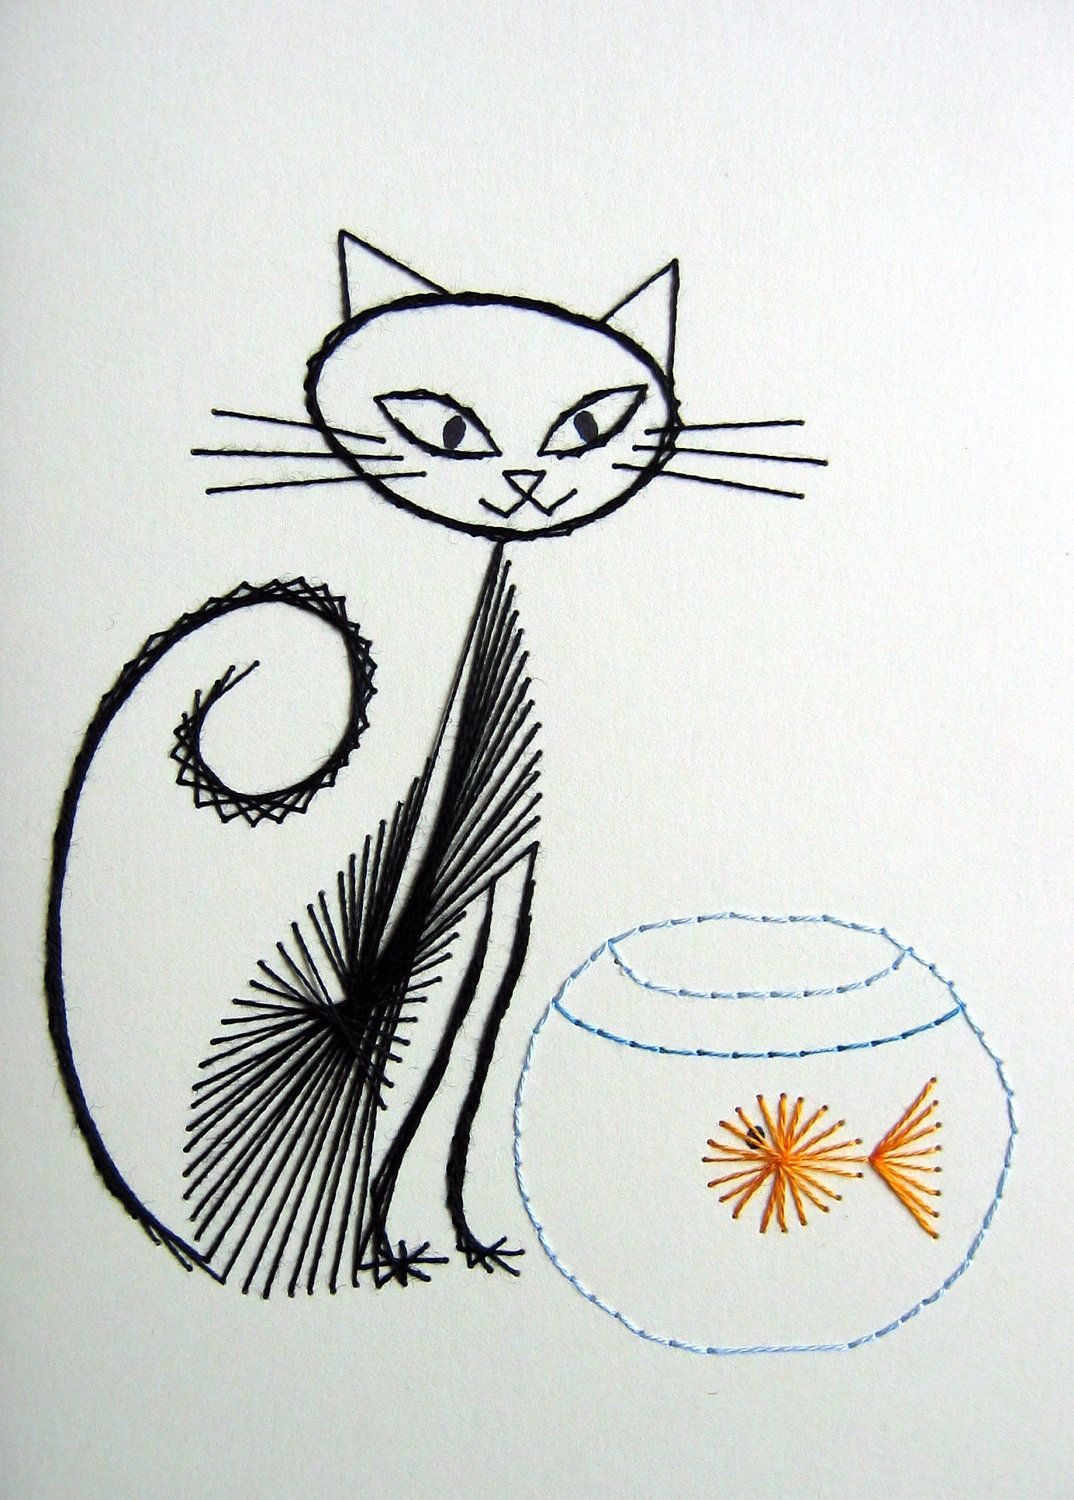 Cat card photos how fabulous are these retro inspired hand cat card photos how fabulous are these retro inspired hand stitched greeting cards kristyandbryce Image collections